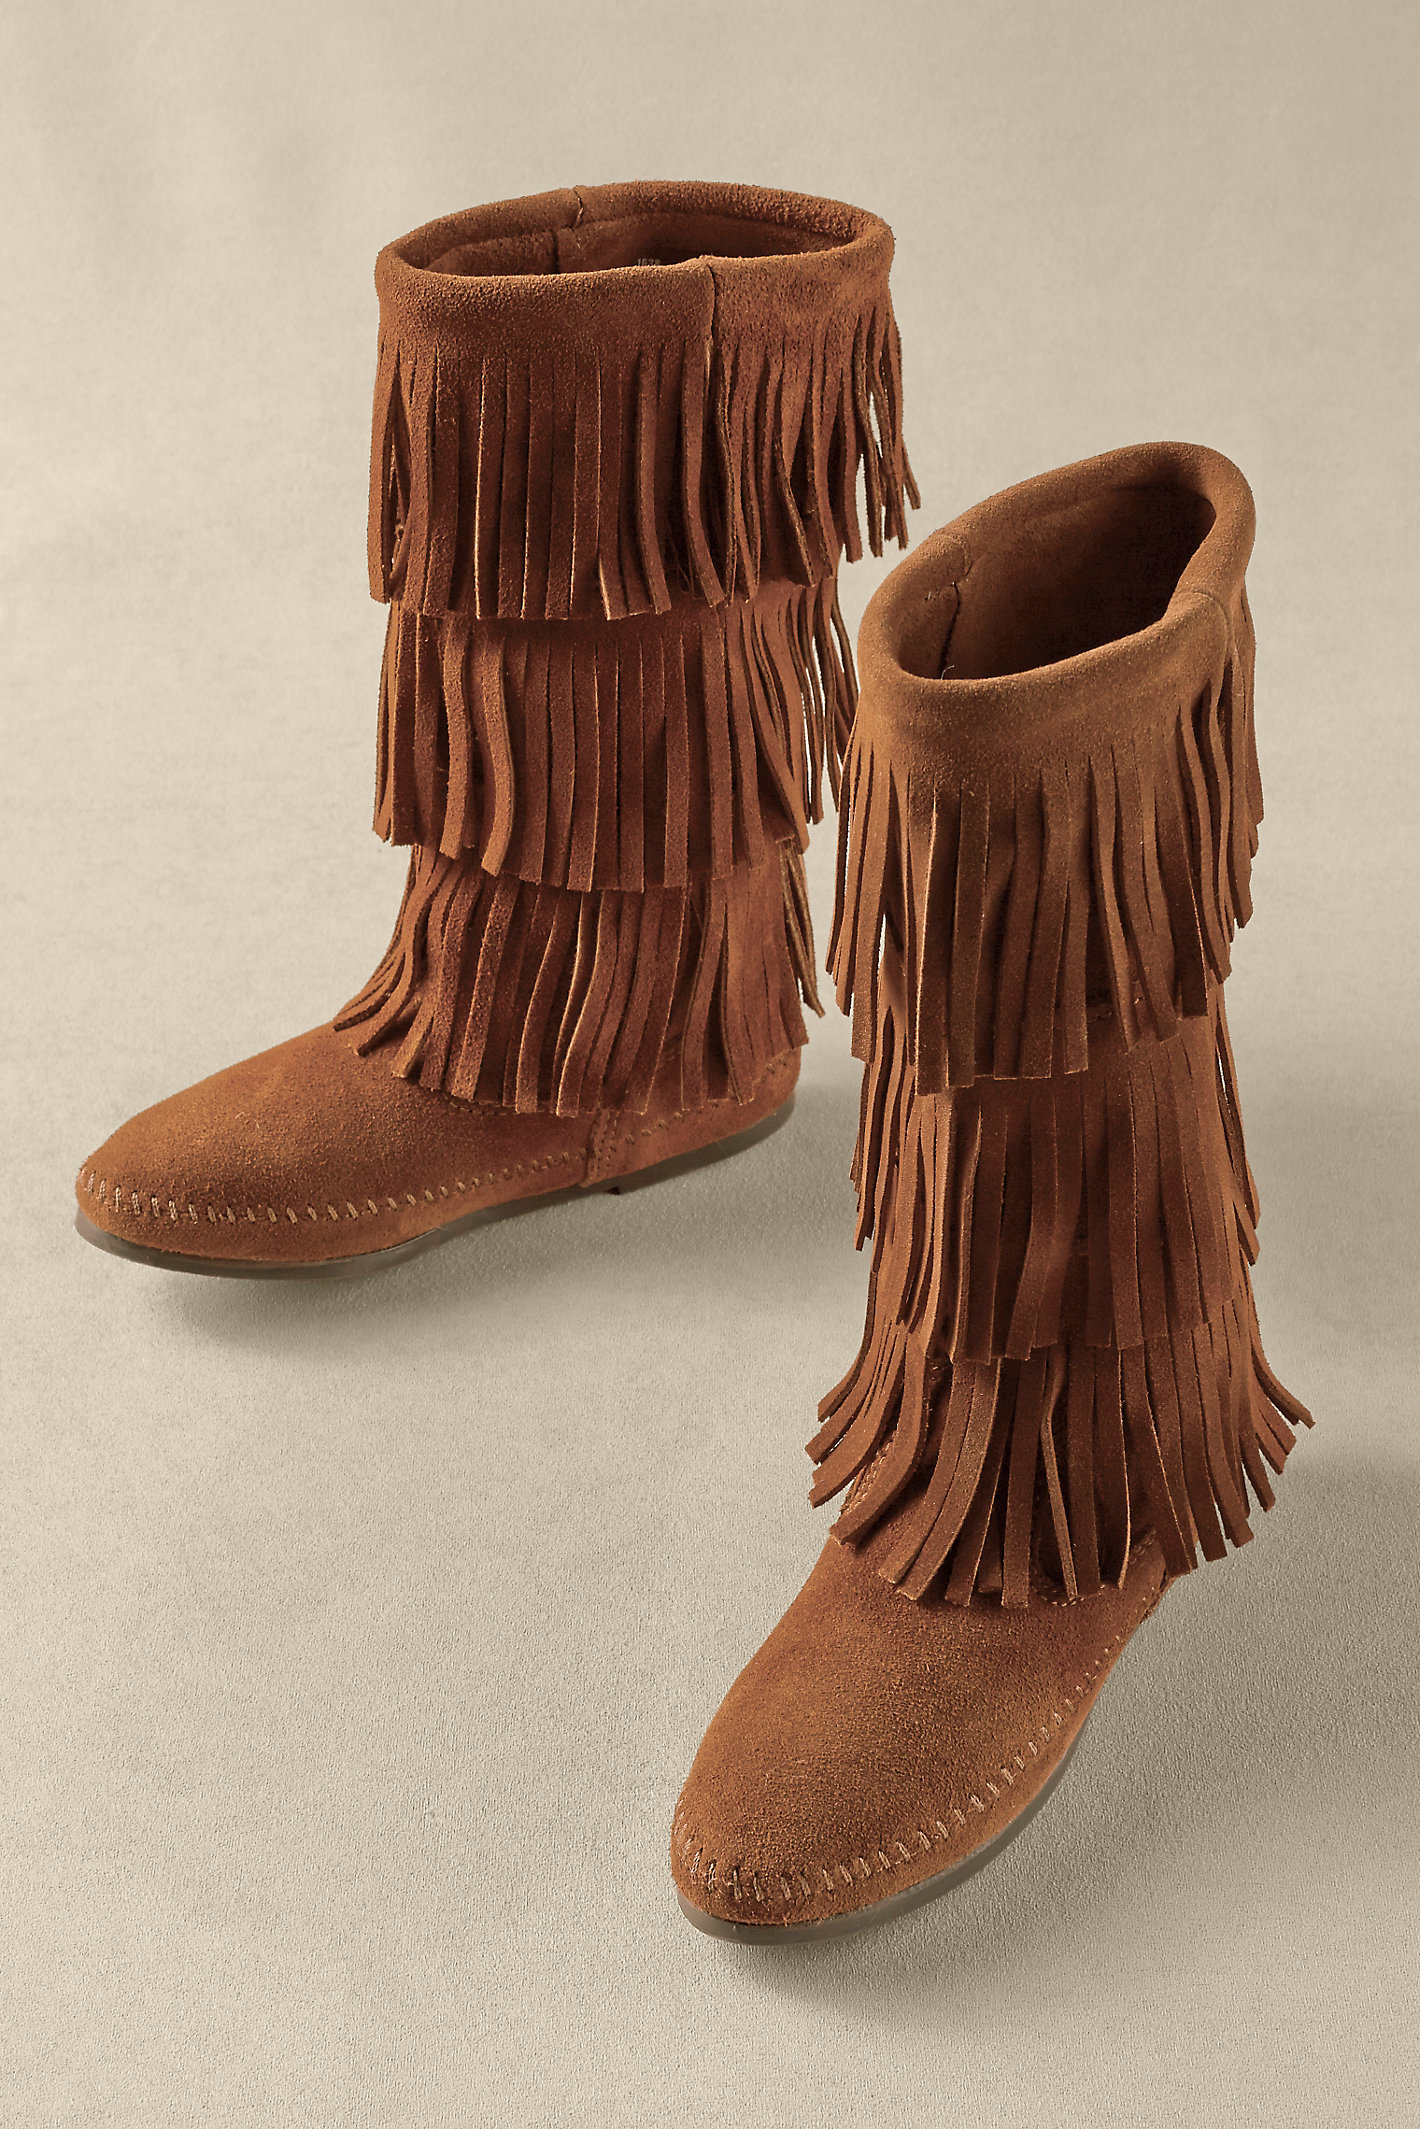 Indio Boots